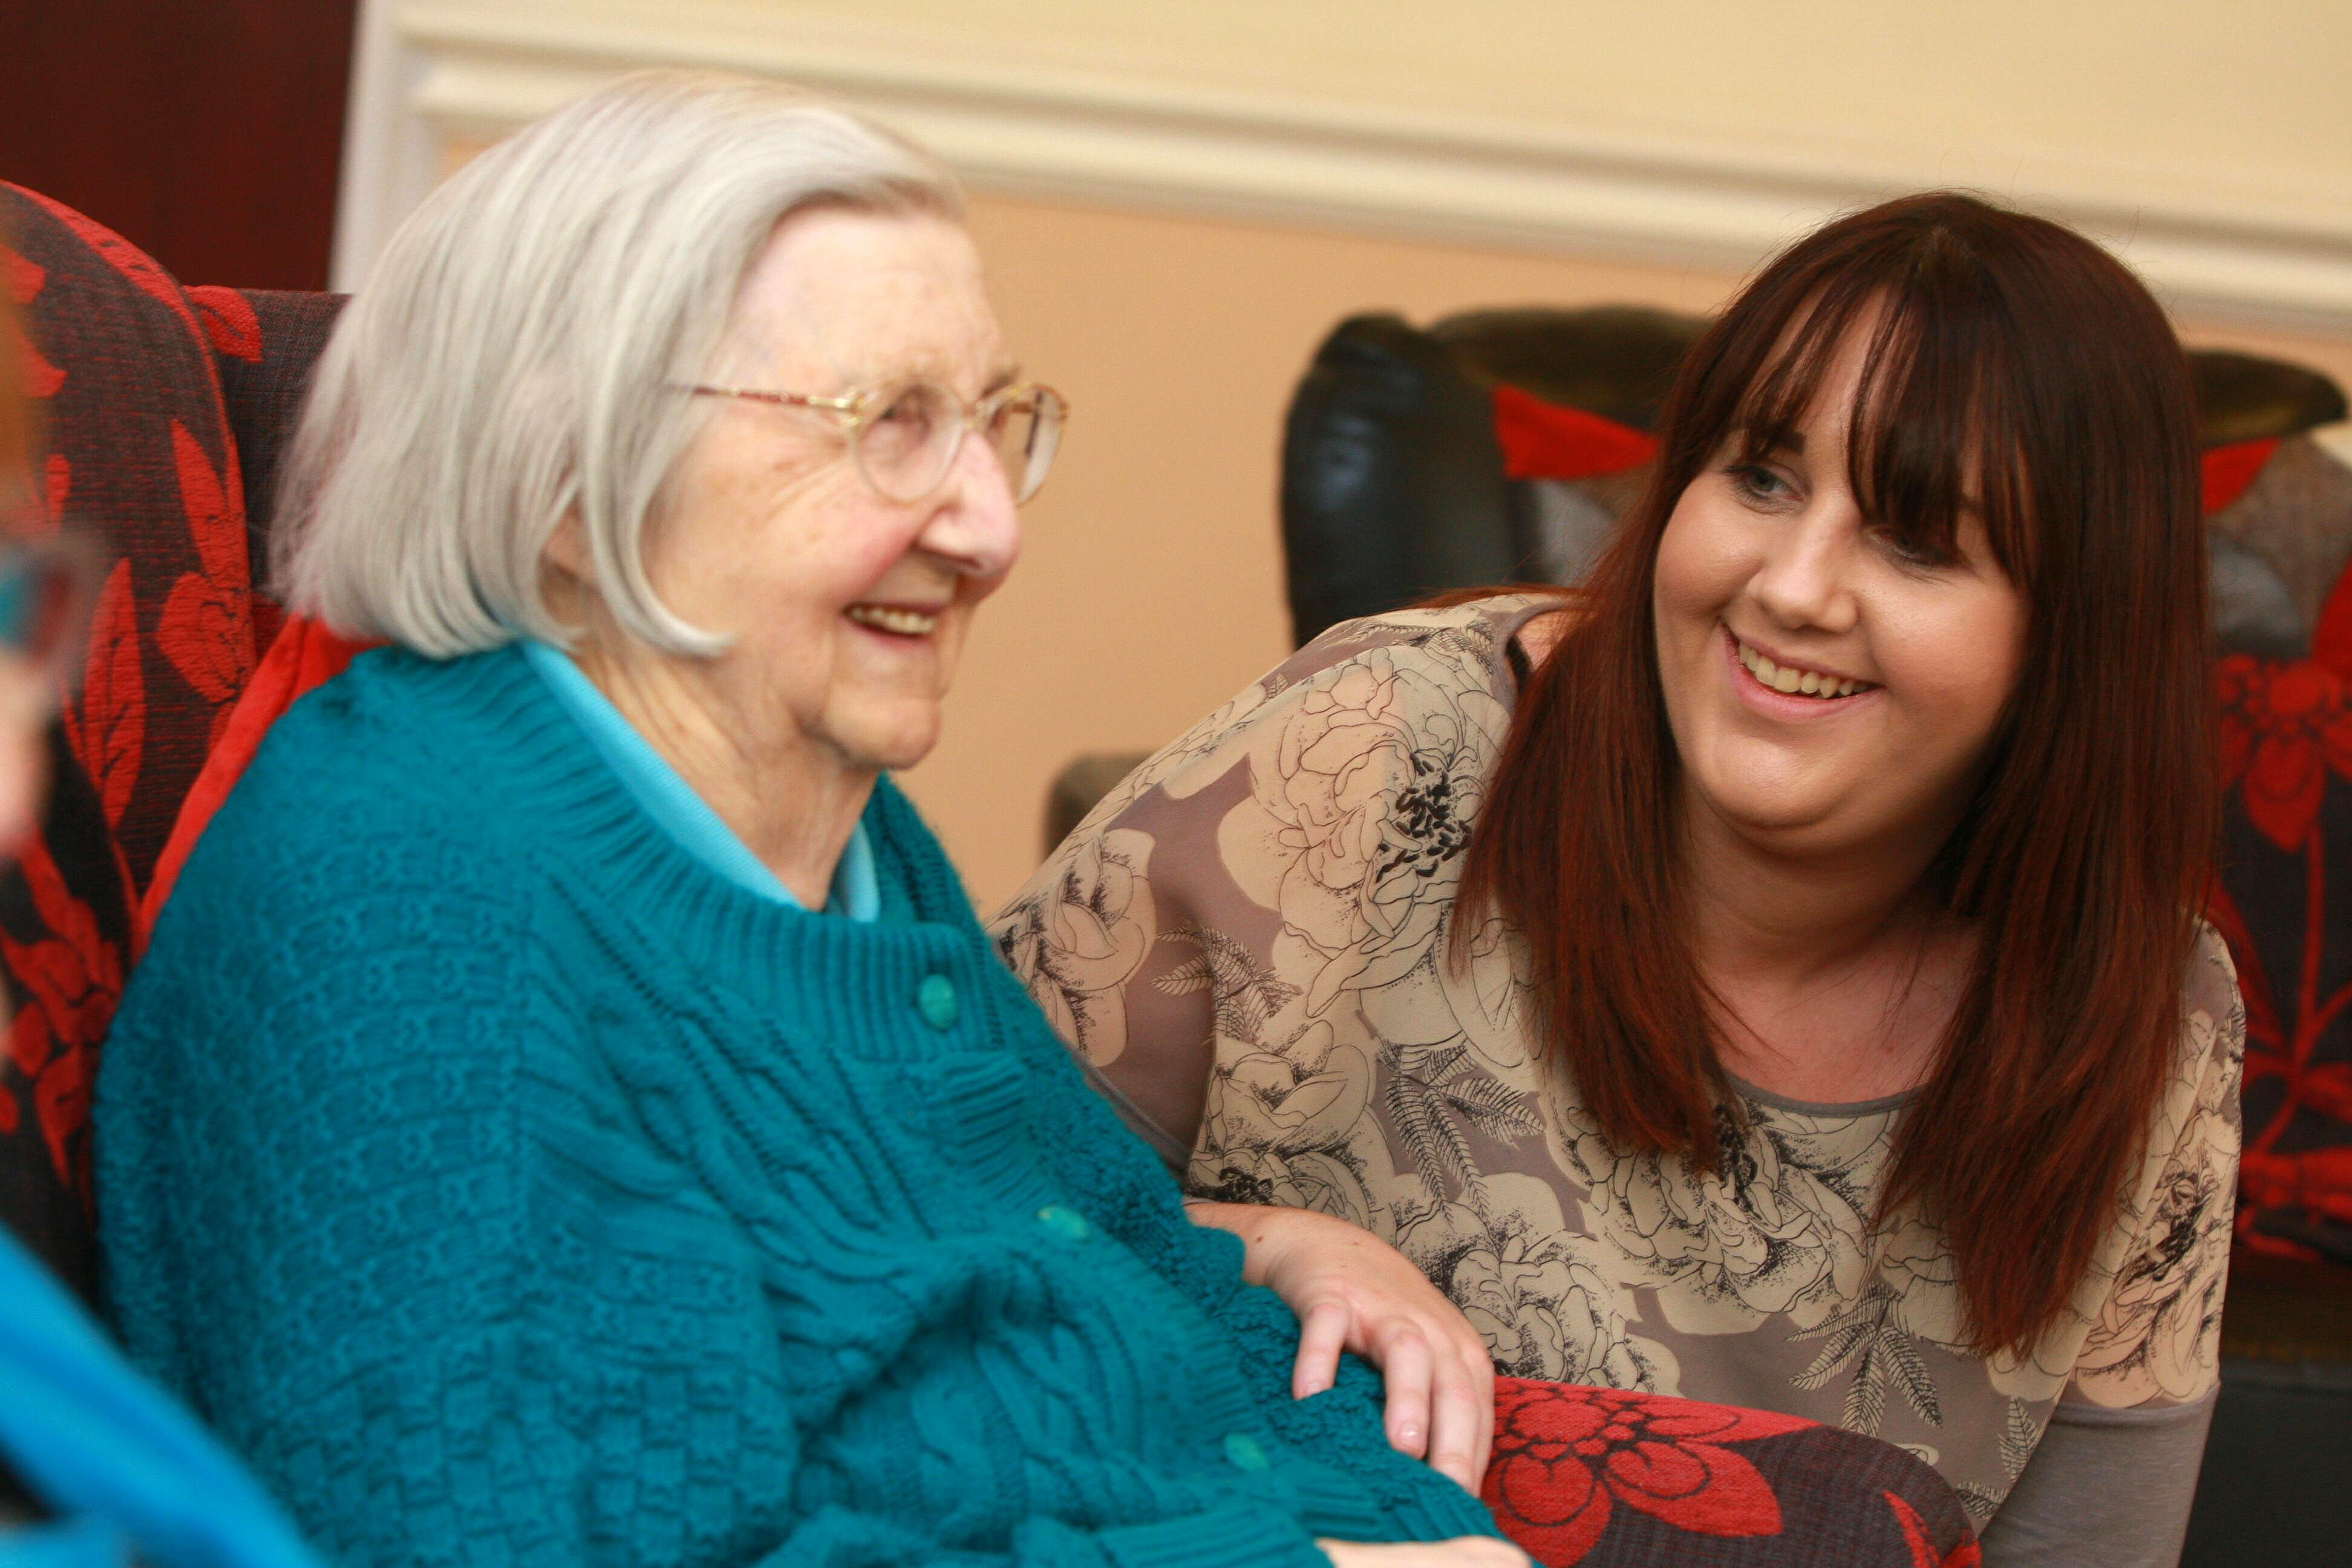 Homes for older people